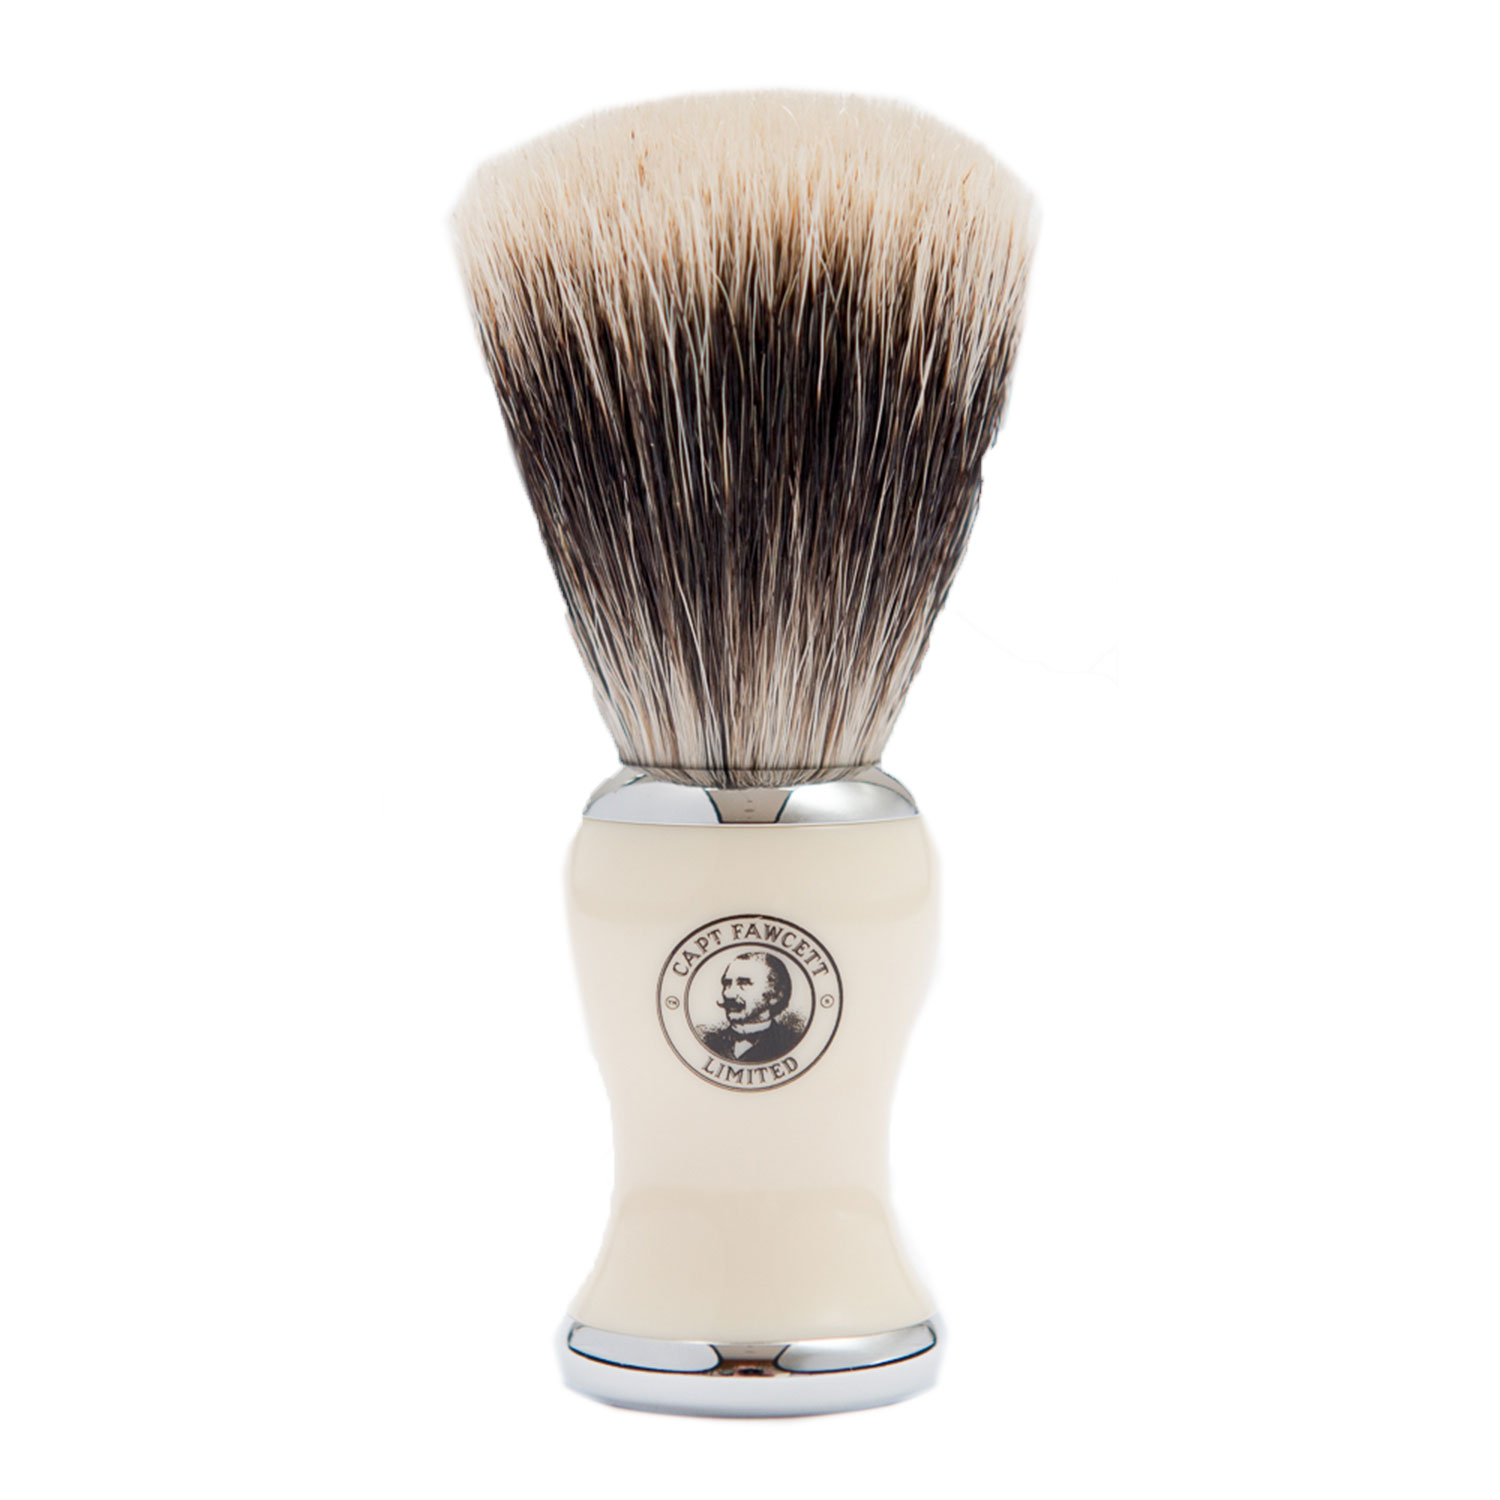 Capt. Fawcett Tools - Best Badger Shaving Brush